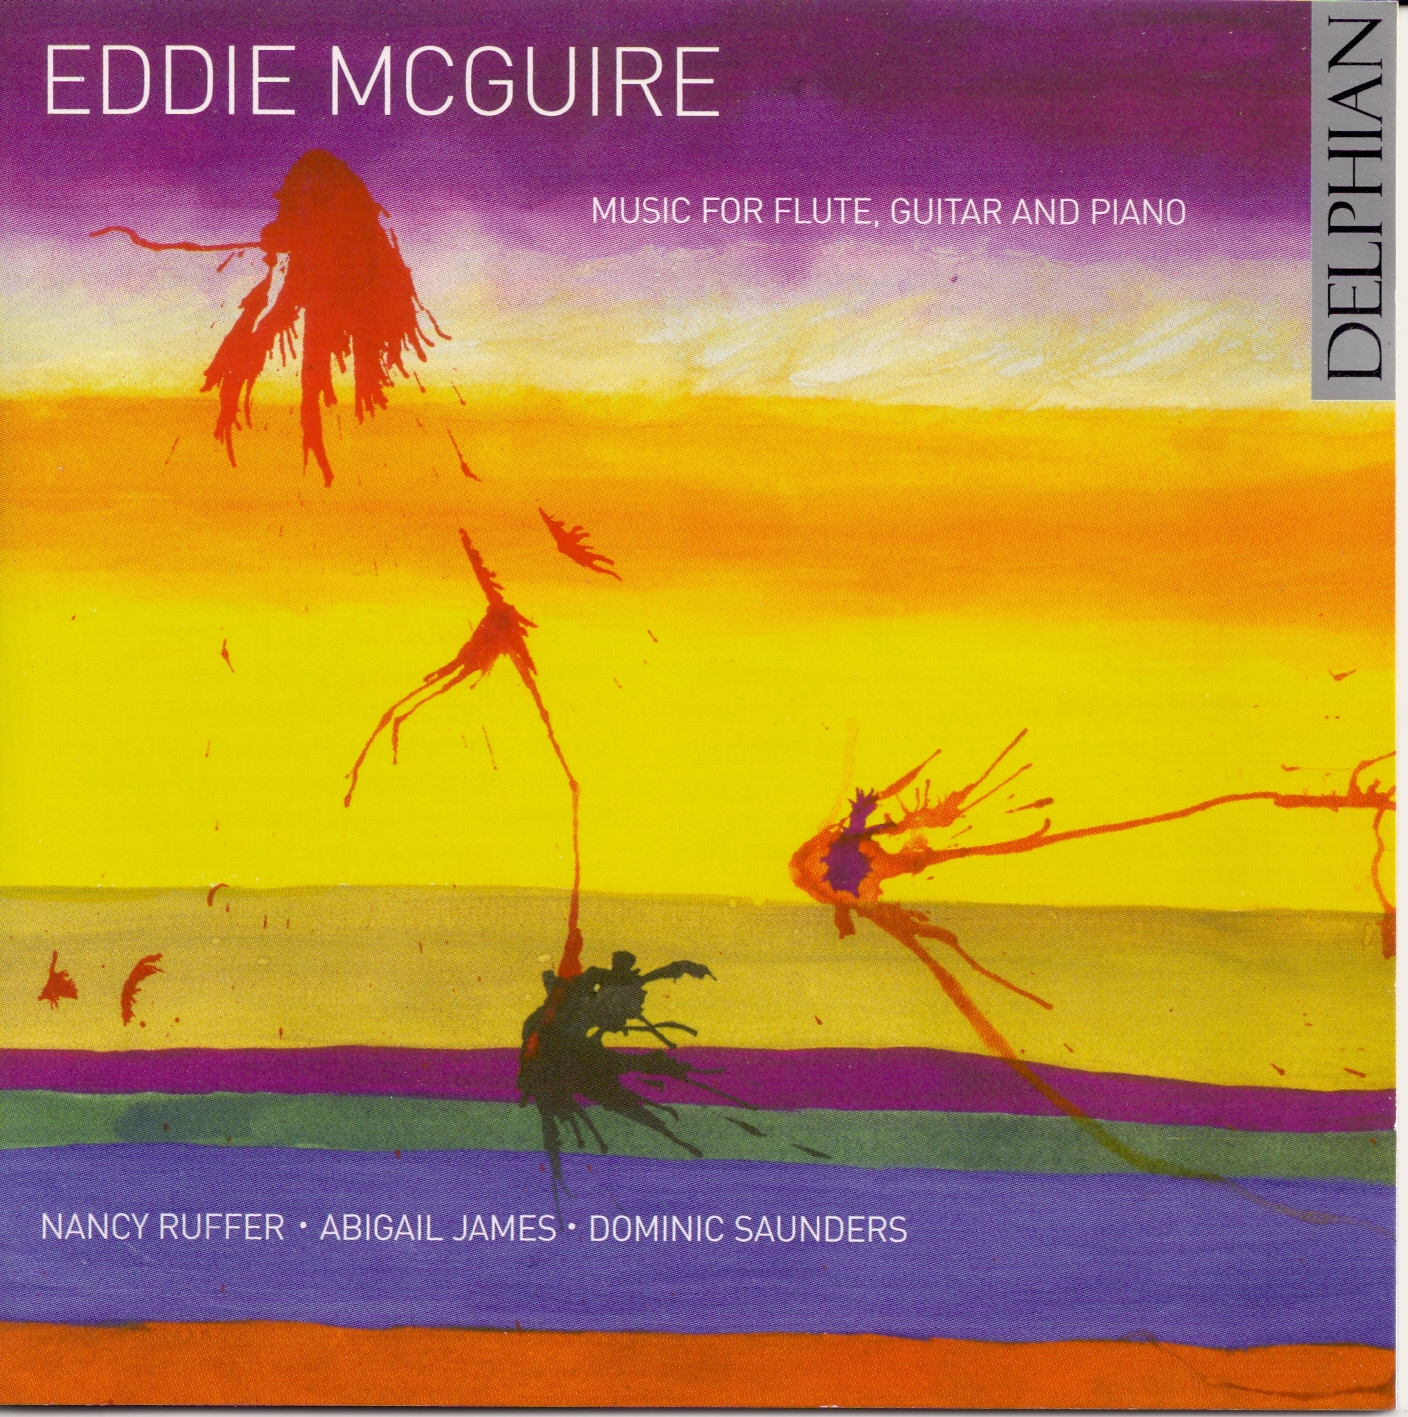 cd cover eddie mcguire music for flute guitar and piano 2006jpg